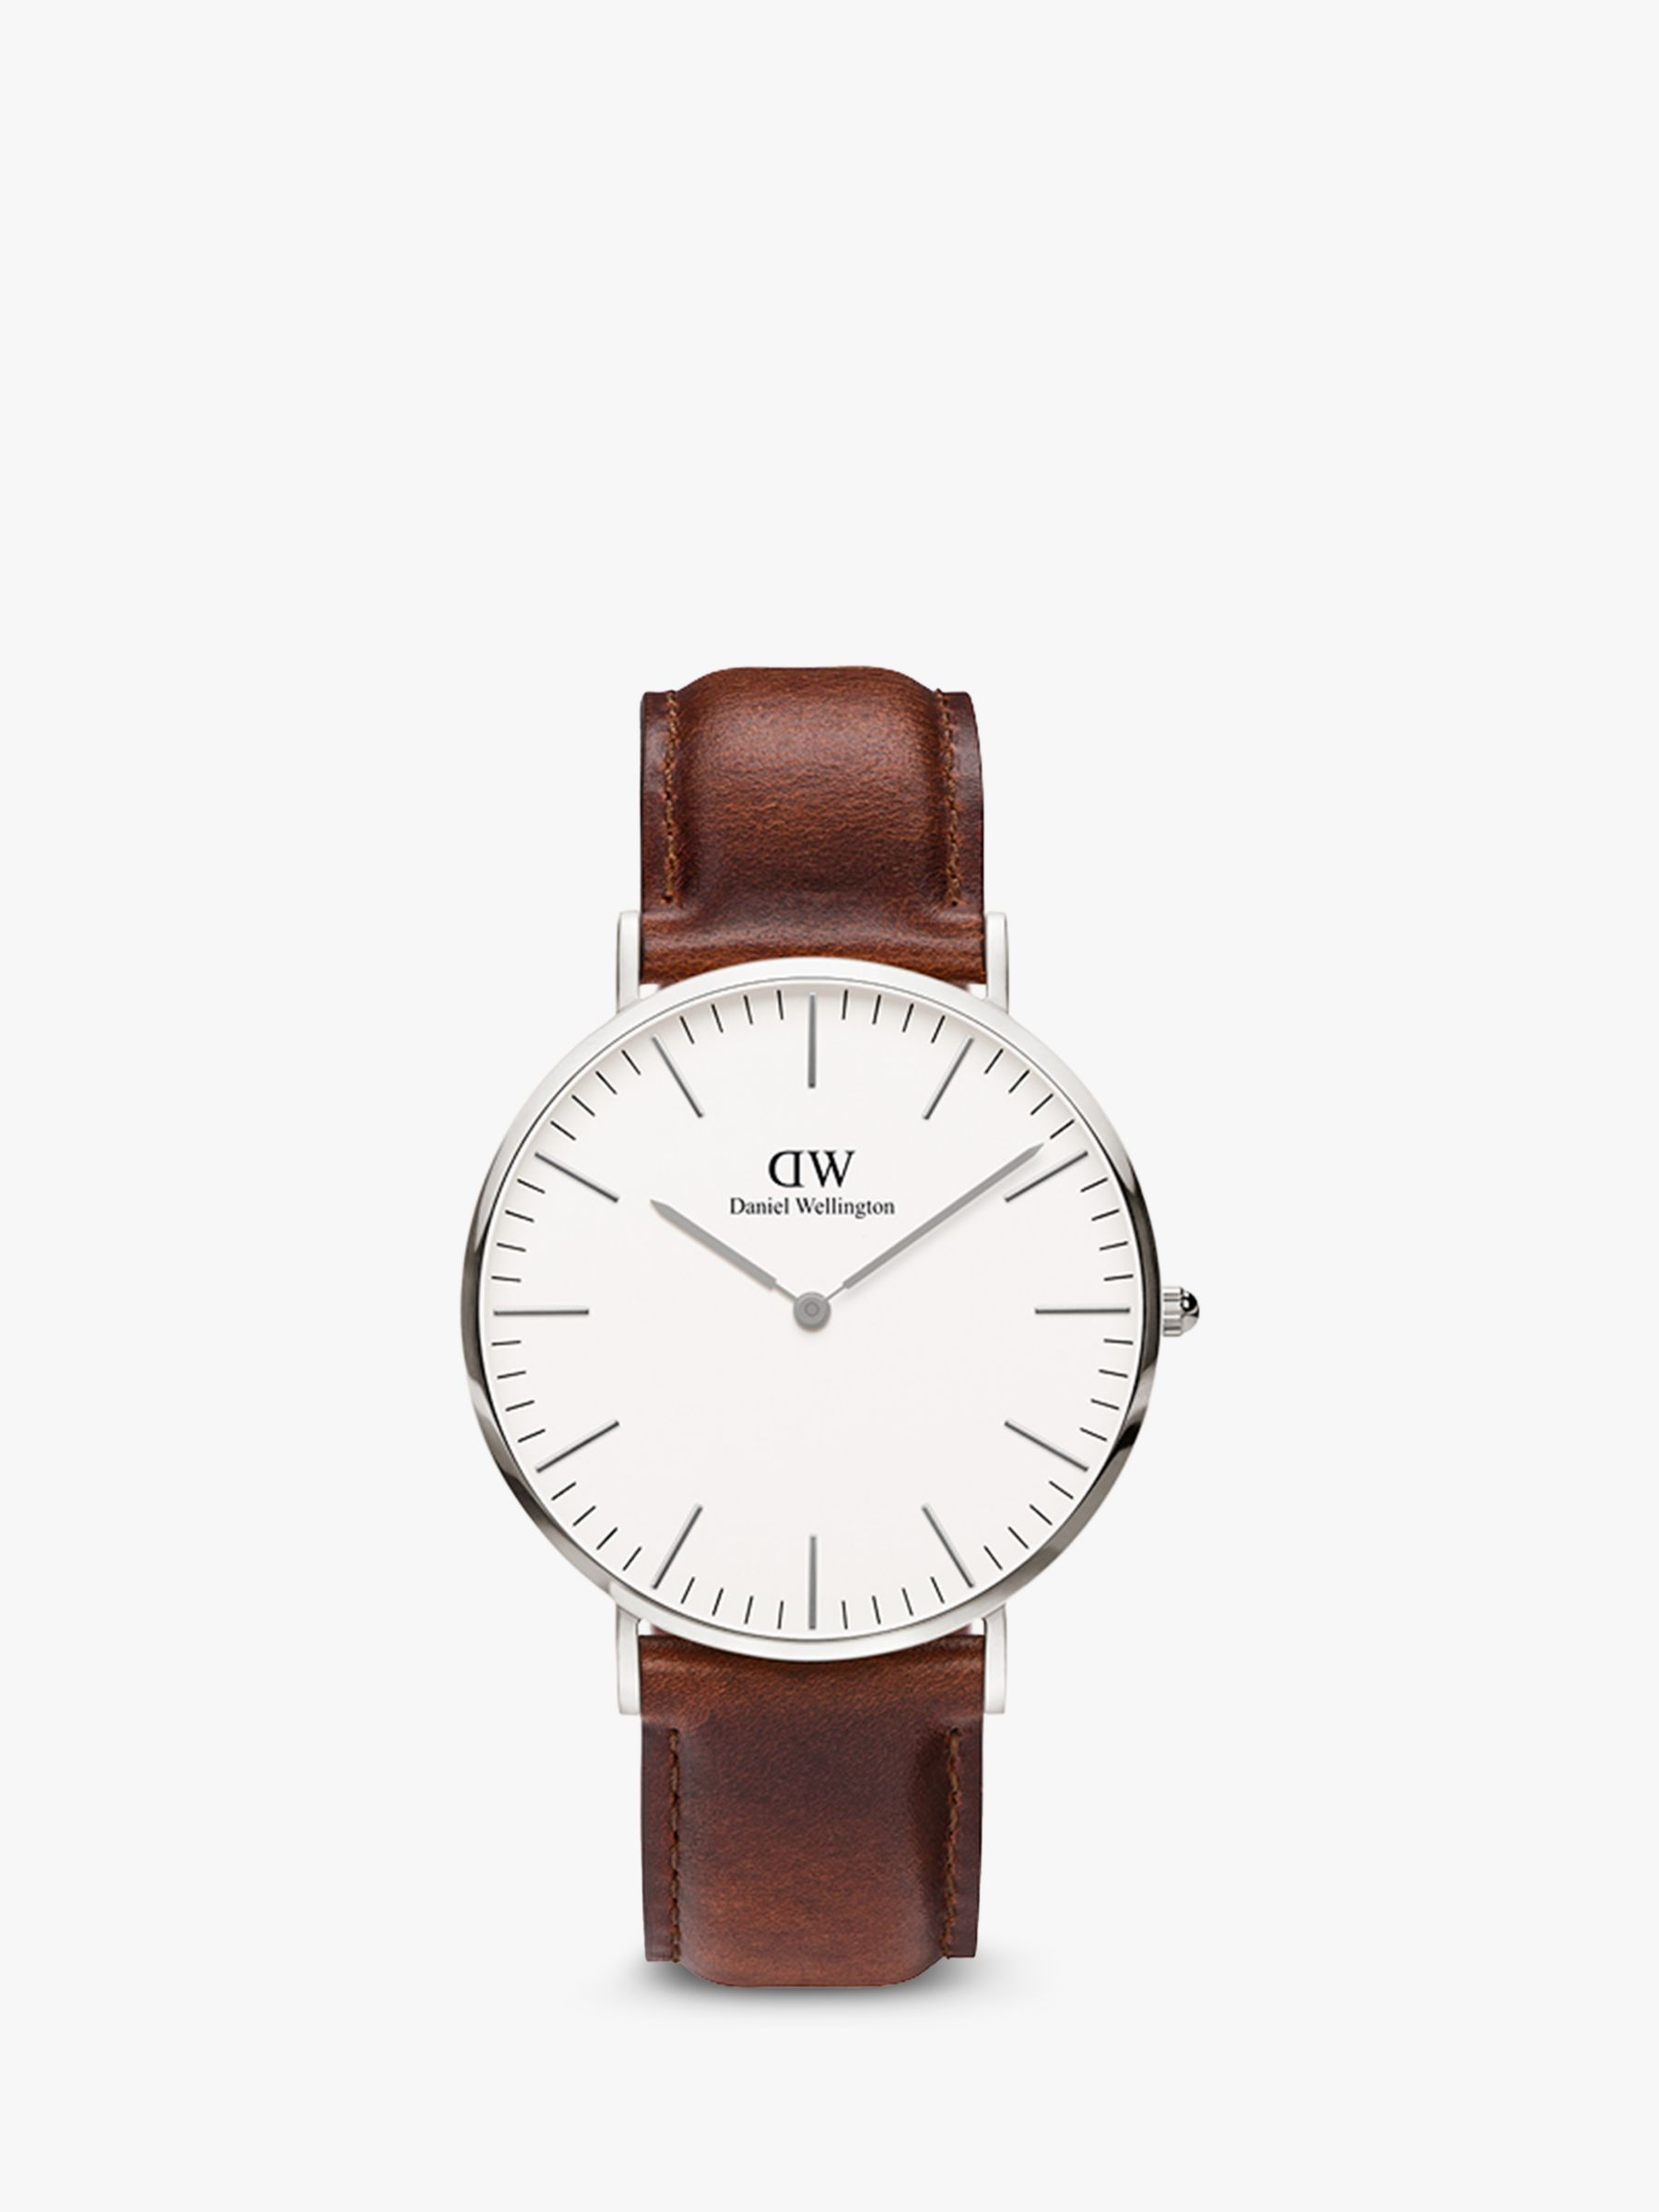 Daniel Wellington Daniel Wellington DW00100021 Men's 40mm Classic St. Mawes Leather Strap Watch, Brown/White